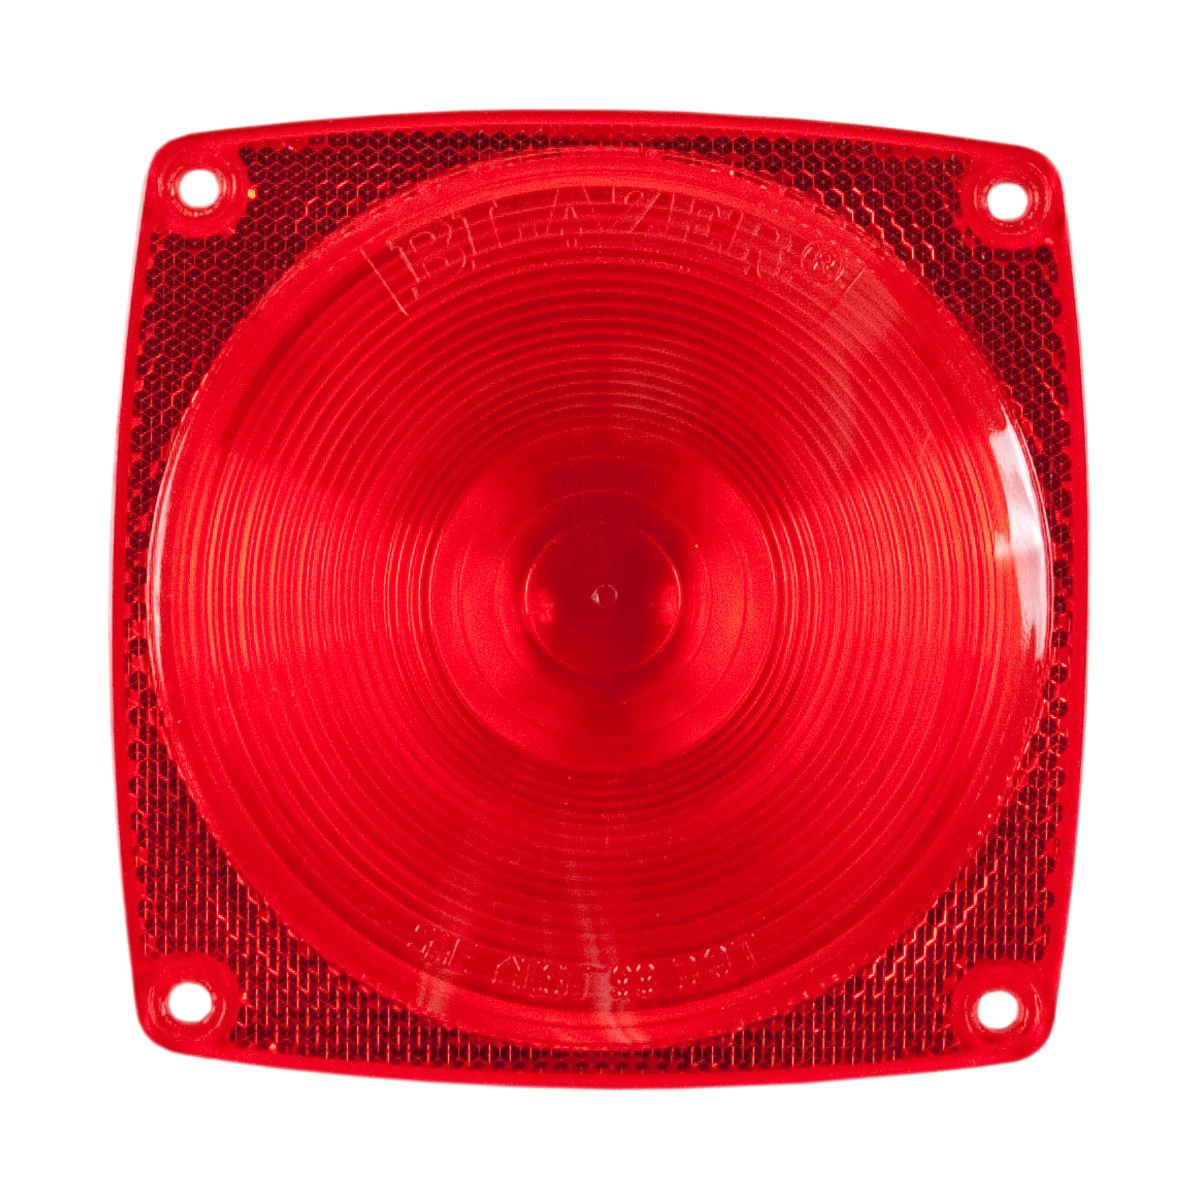 Blazer B983 Stop/Tail/Turn Light Replacement Lens - Square - Red by Blazer International Trailer & Towing Accessories (Image #1)